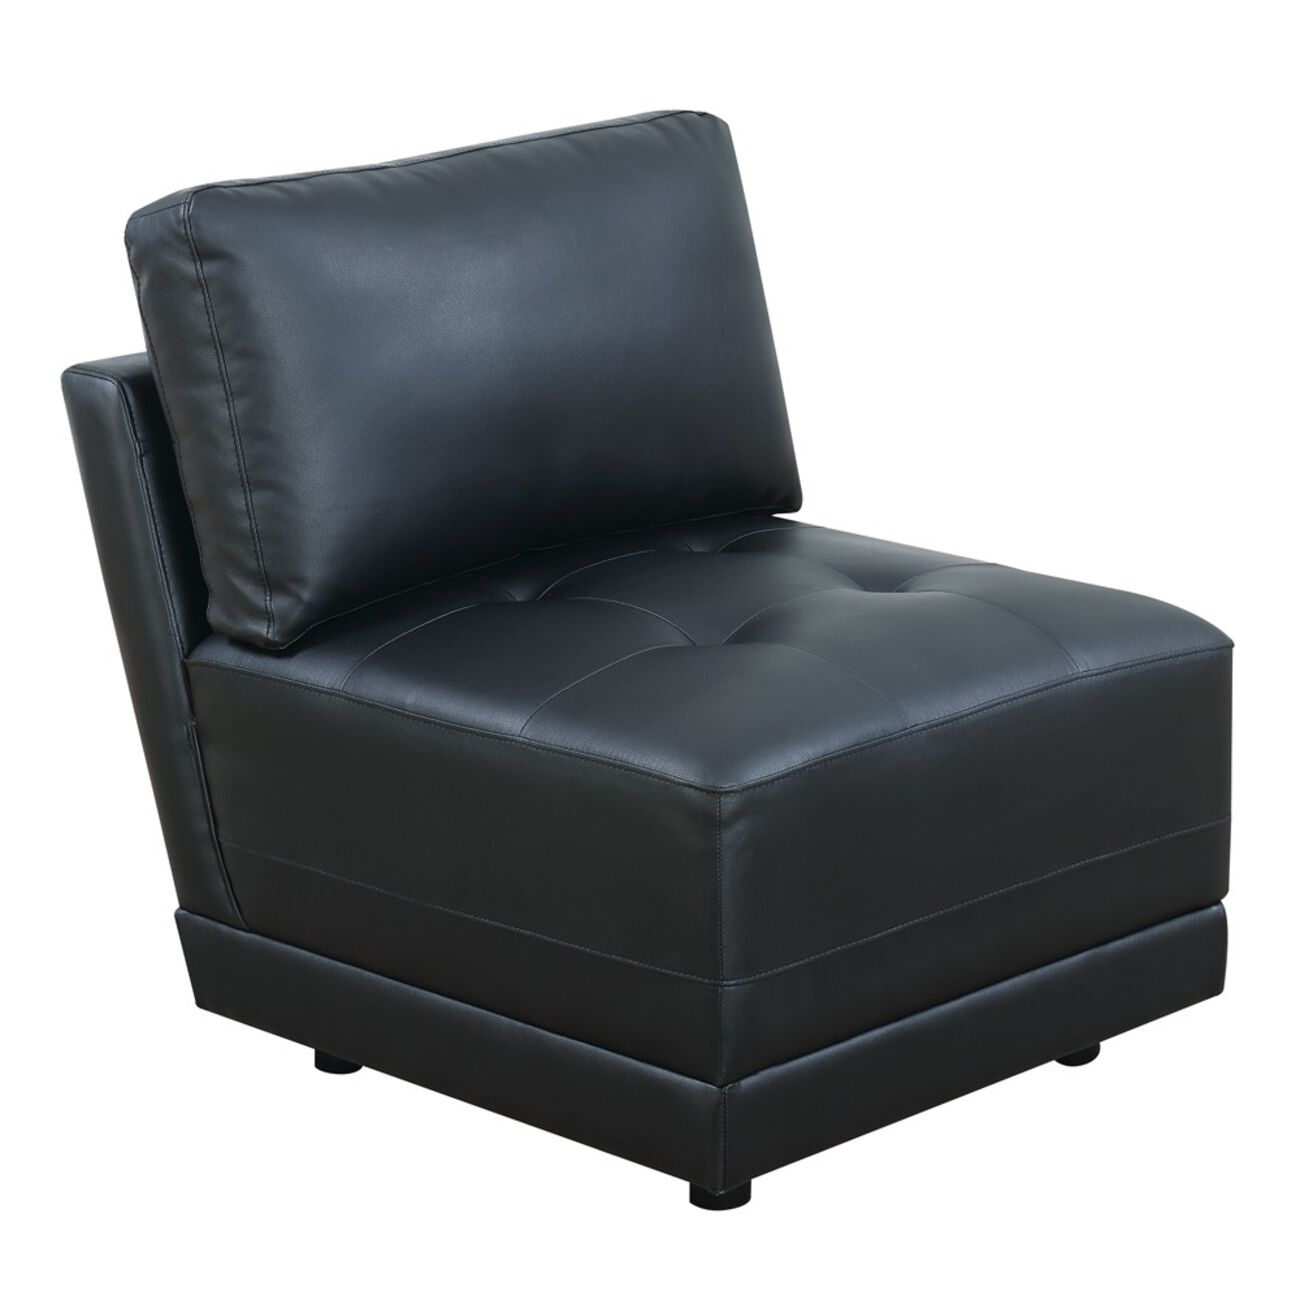 Leather Armless Chair With Back Cushion, Black